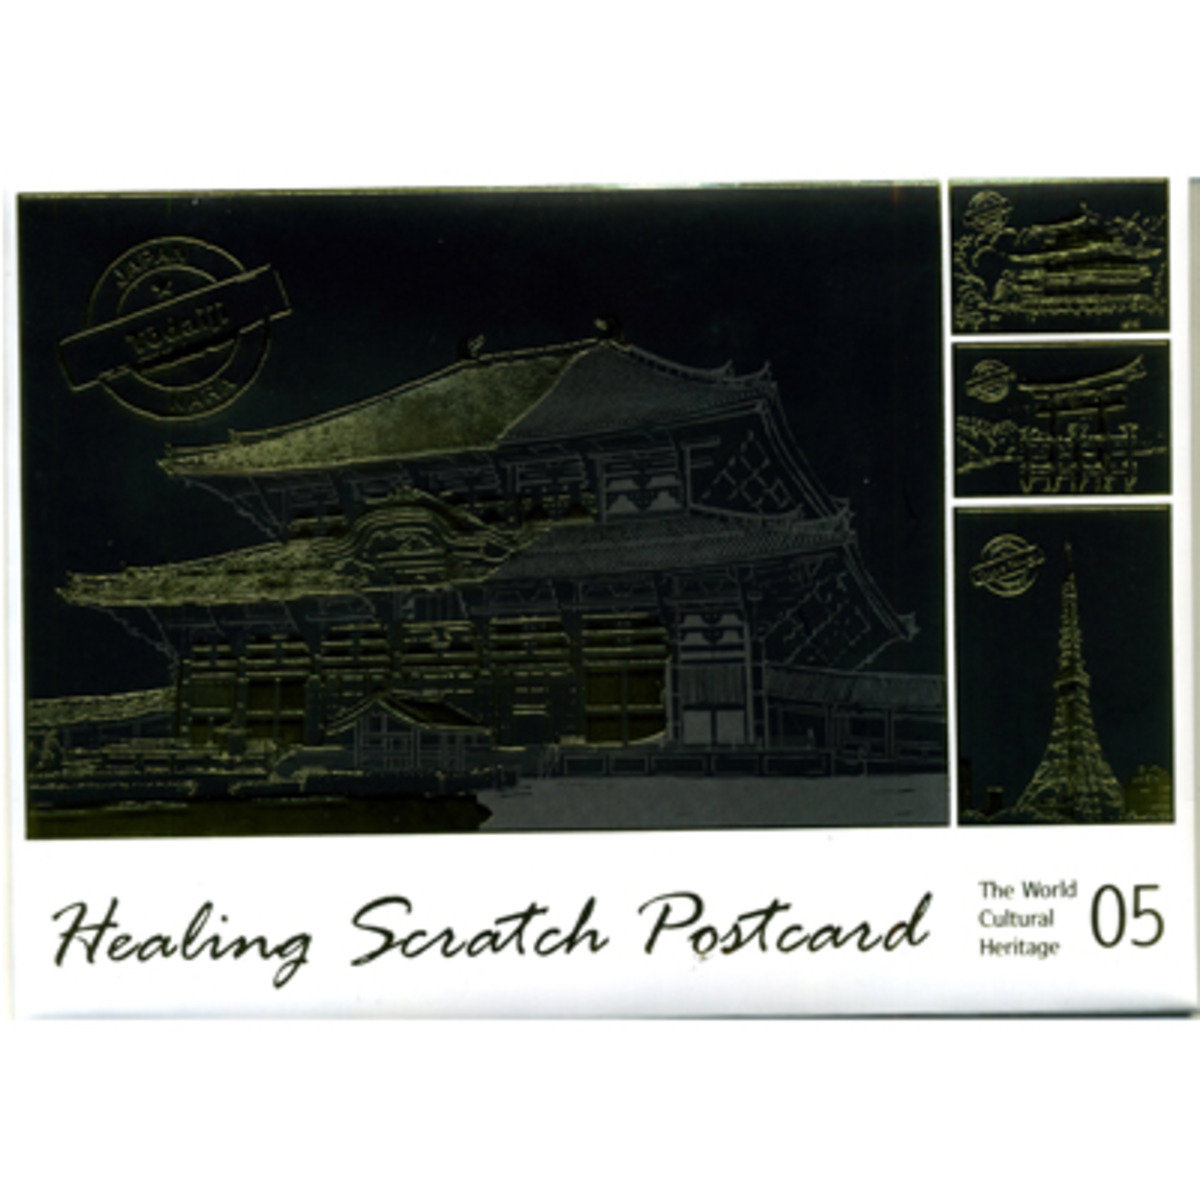 HEALING SCRATCH POSTCARD #5 THE WORLD CULTURAL HERITAGE